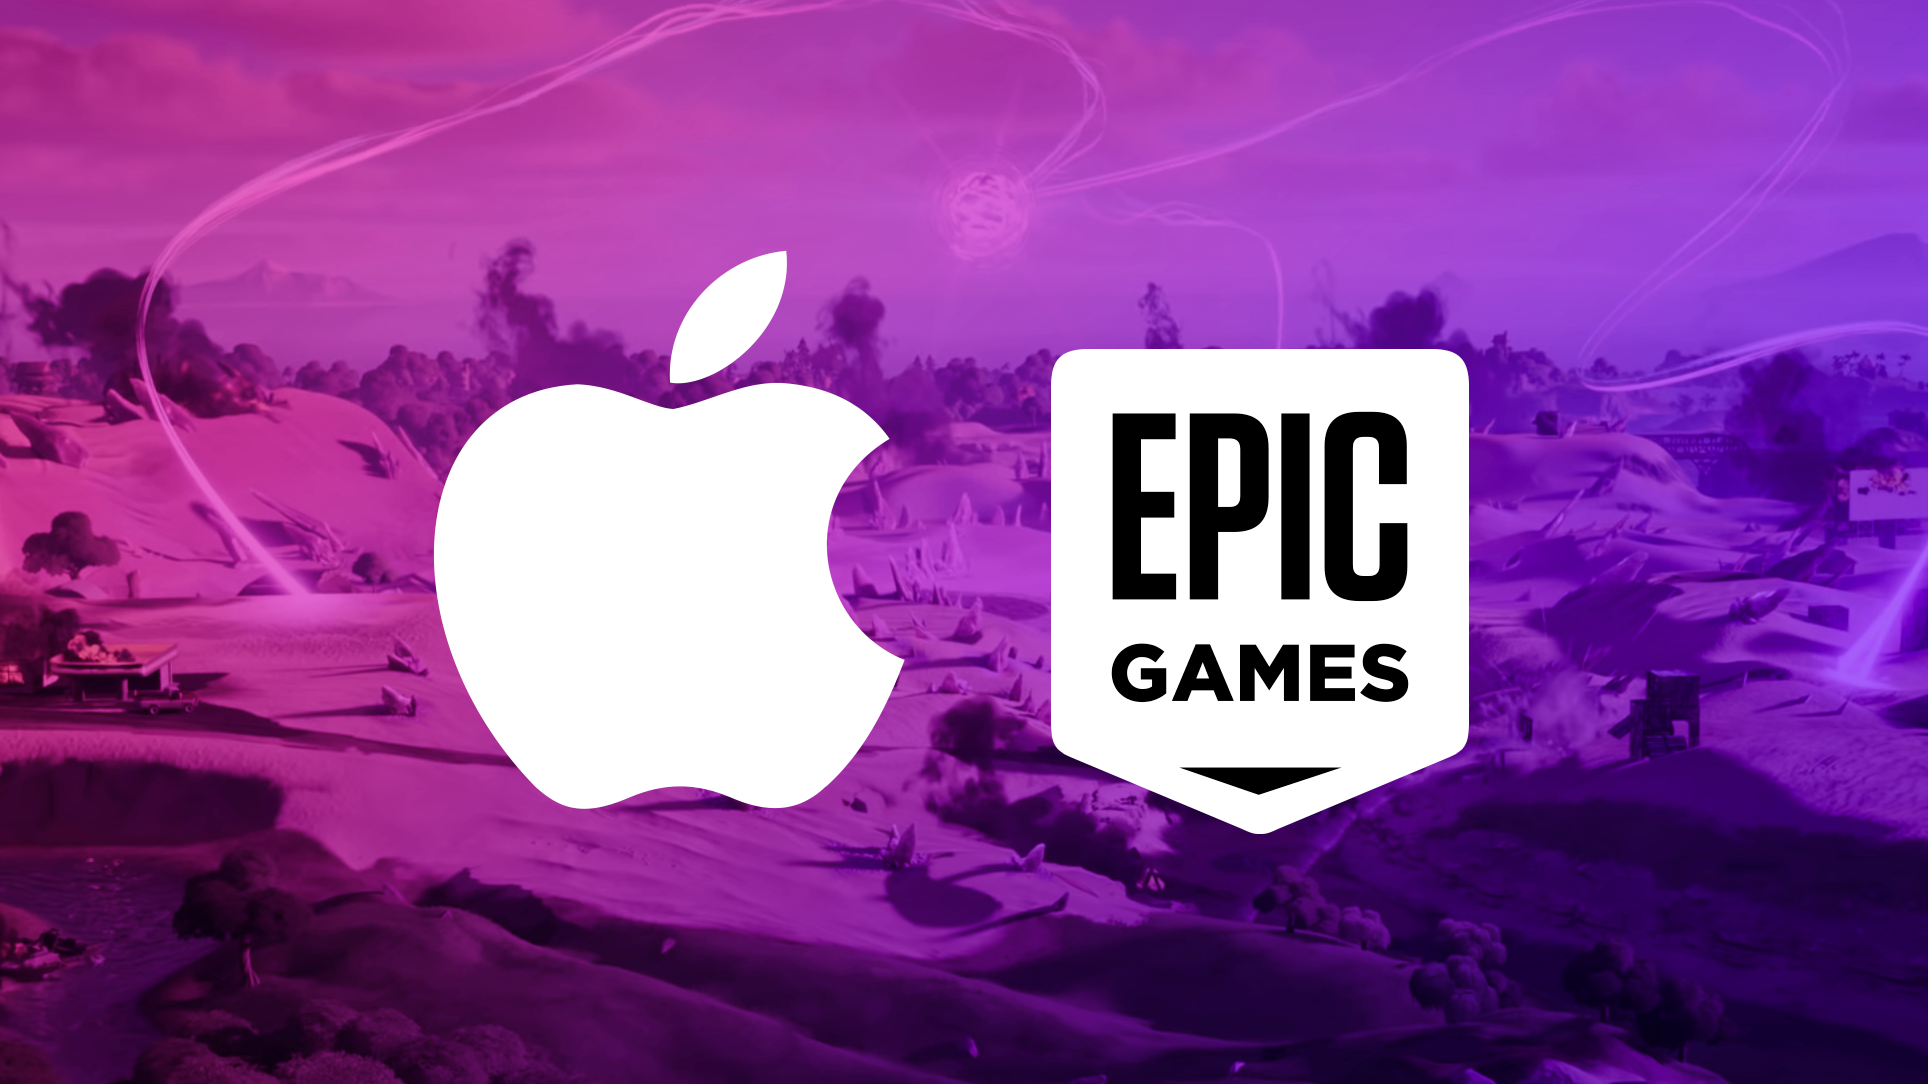 Apple and Epic Logo